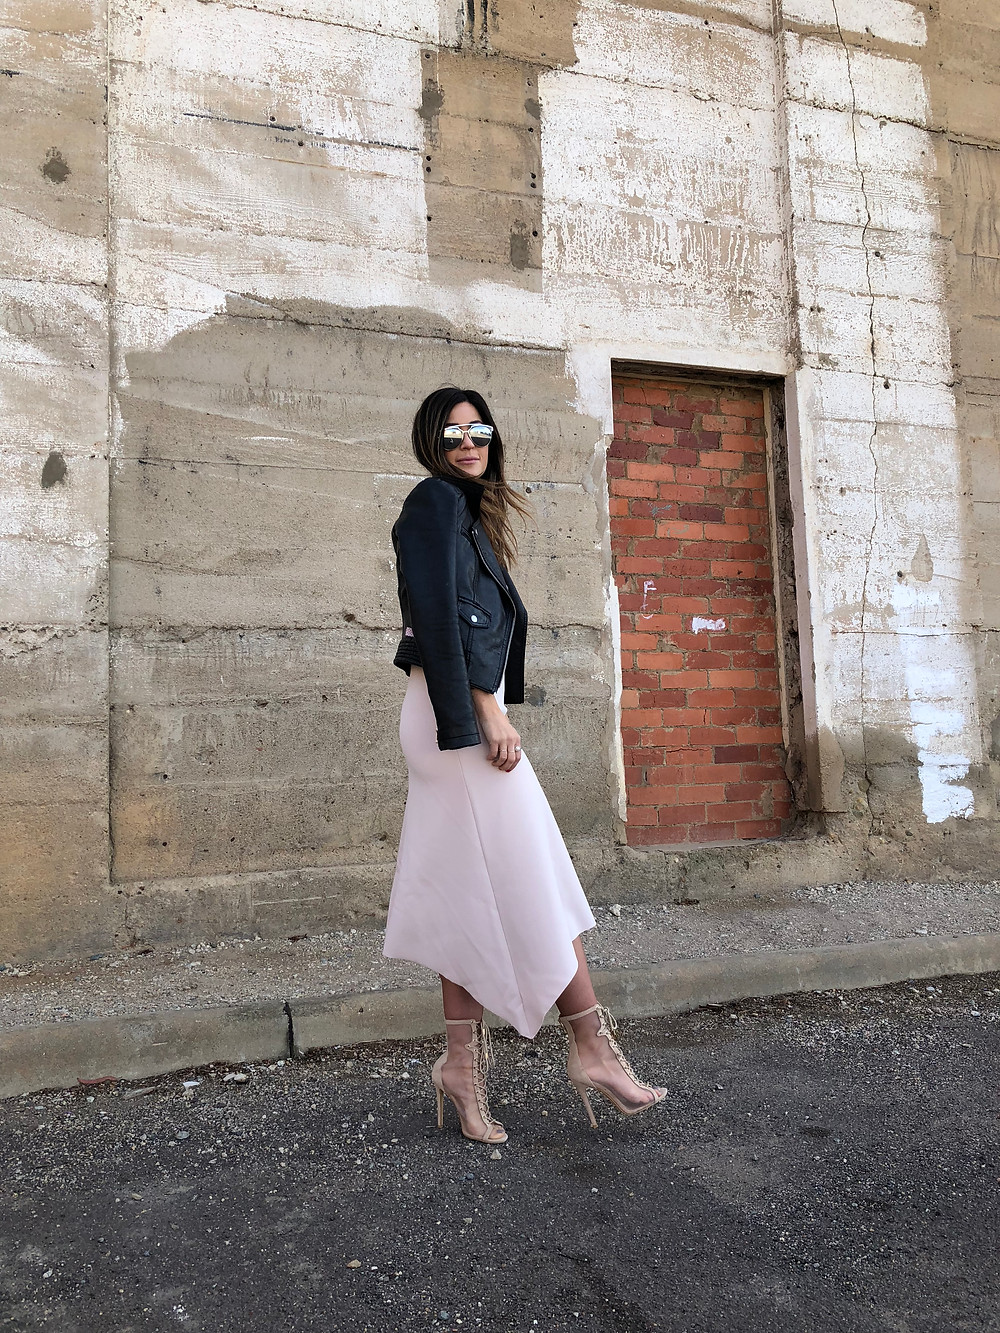 Urbn Gray The Style Side Street Style Canberra